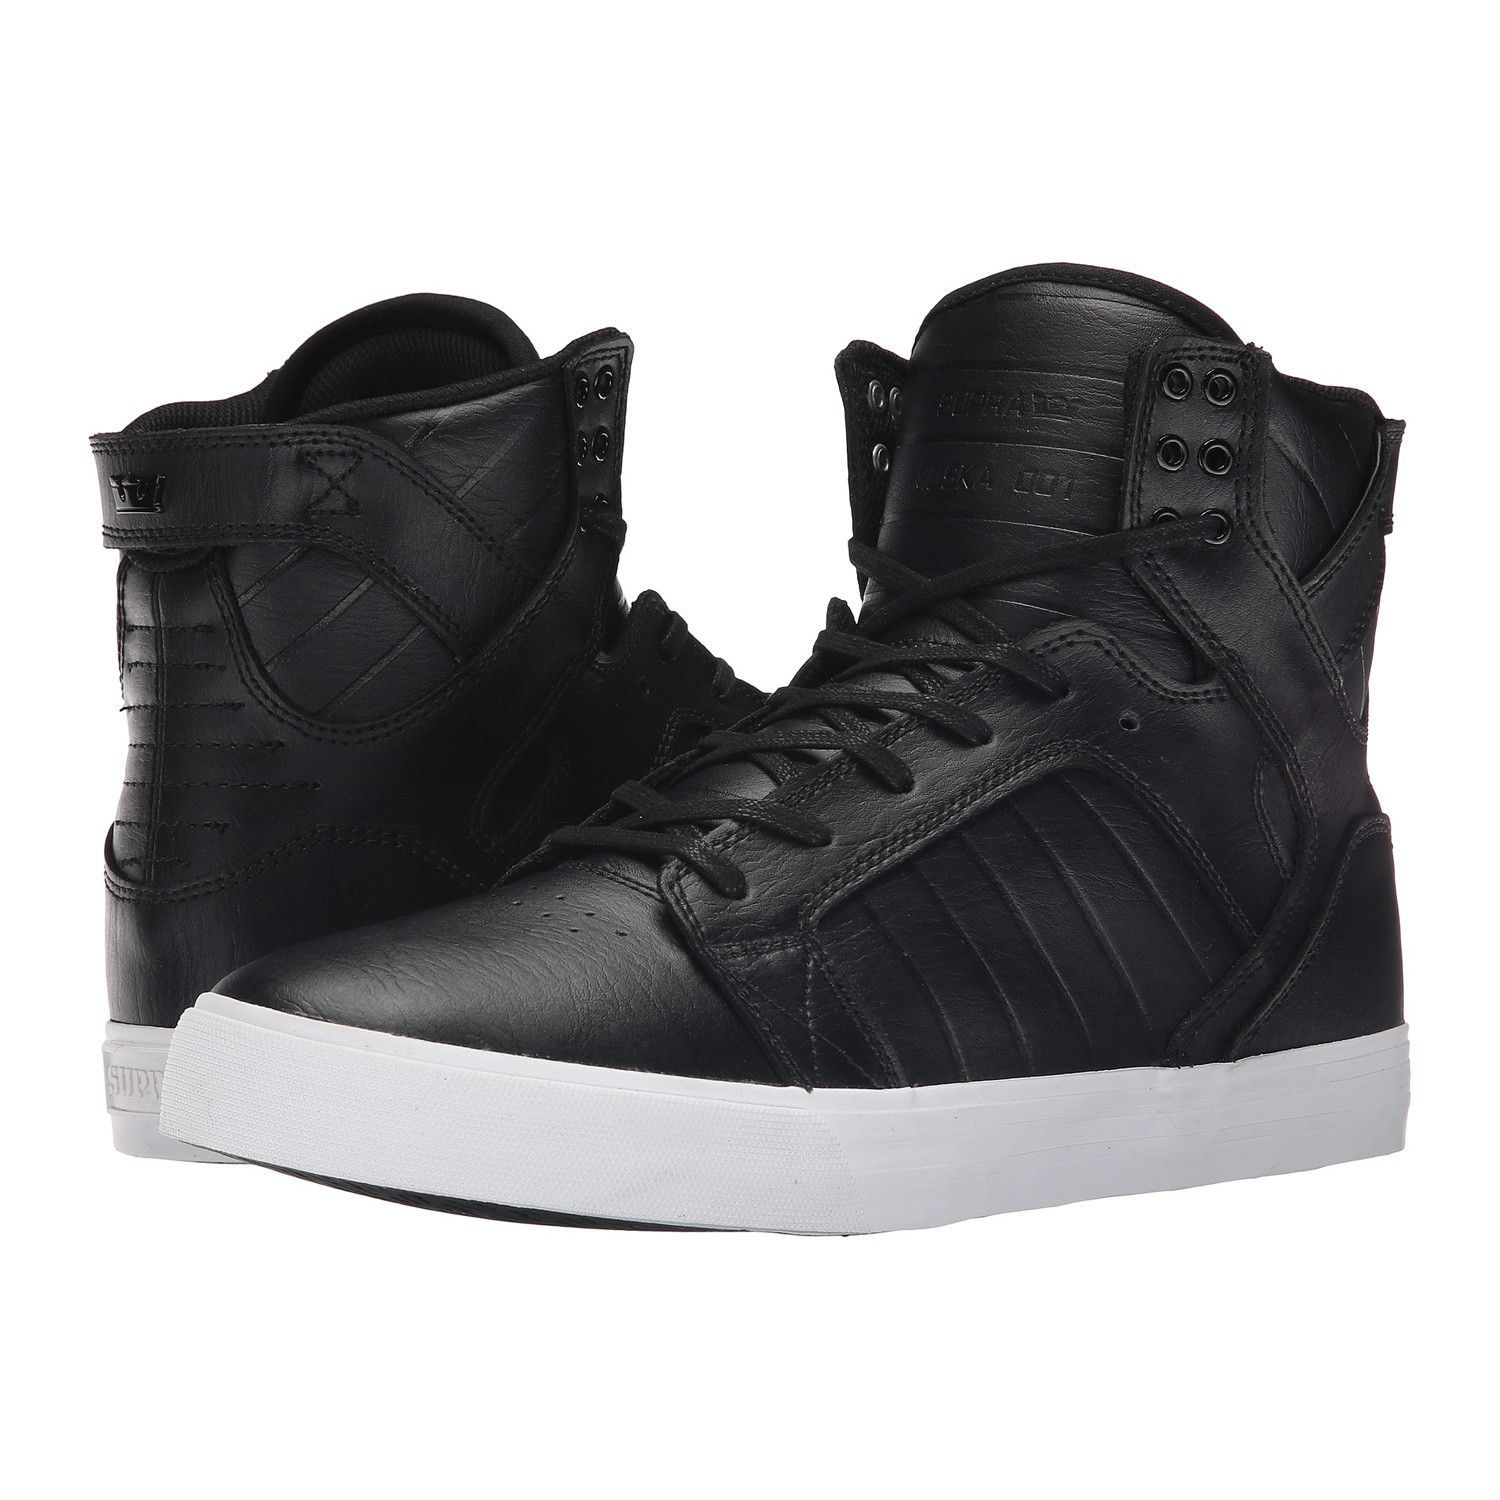 2db060215f SUPRA Skytop Men | Black/White | Clothing | Supra skytop, Mens skate ...